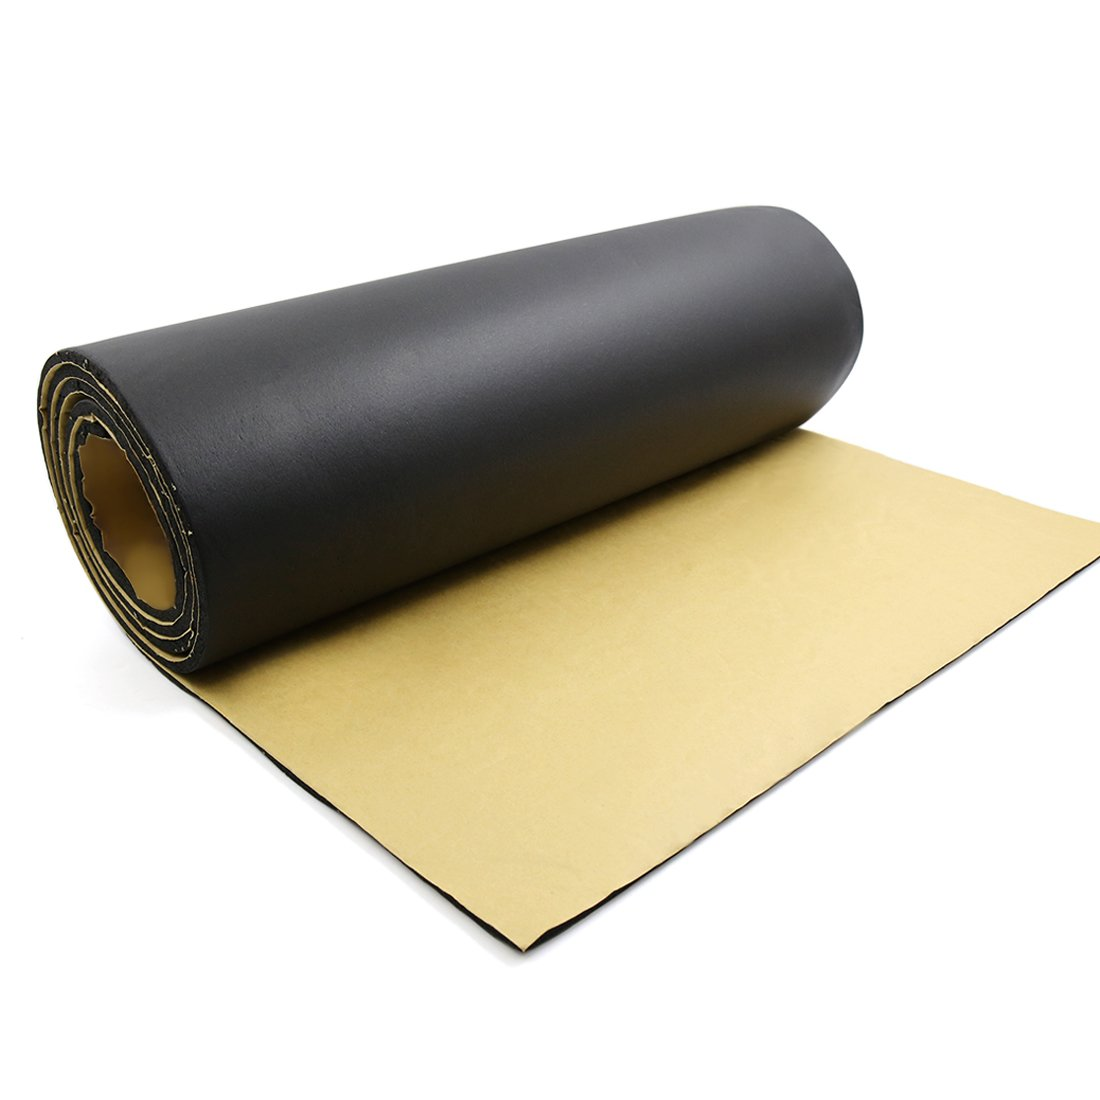 uxcell 197mil 5mm 32.29sqft Car Floor Tailgate Sound Insulation Deadener Mat 118'' x 40''